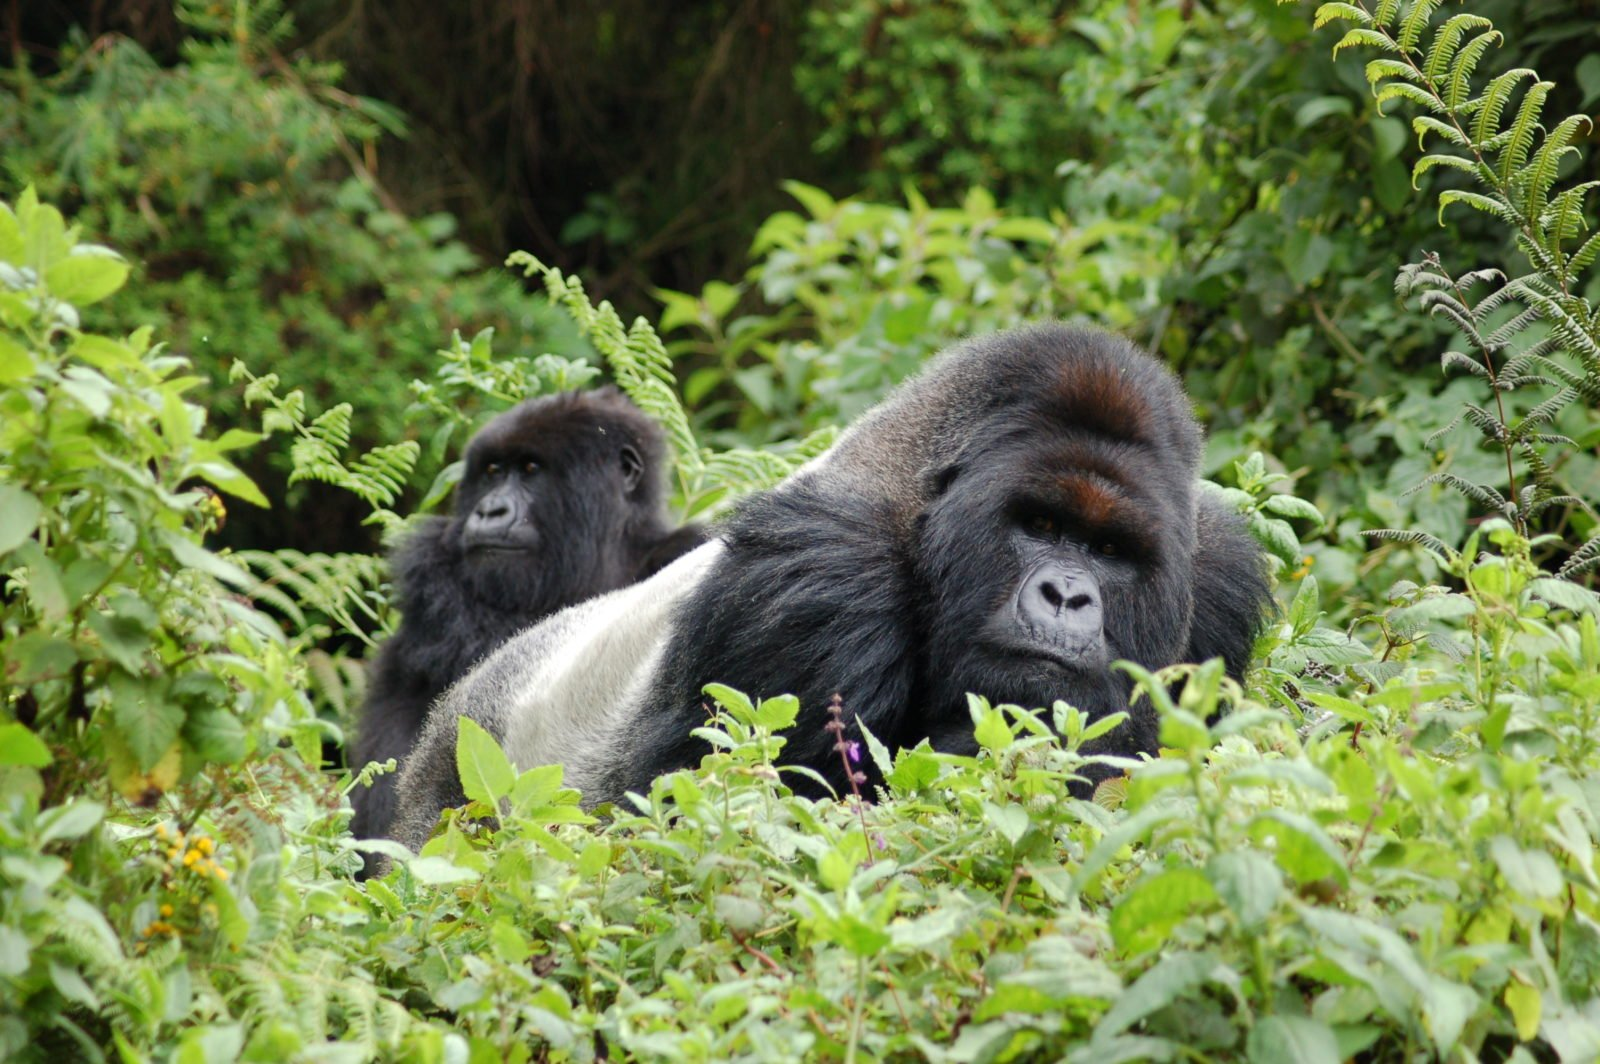 The Responsible Tourism Partnership Working on a Sustainable Solution in Bwindi, Uganda 1